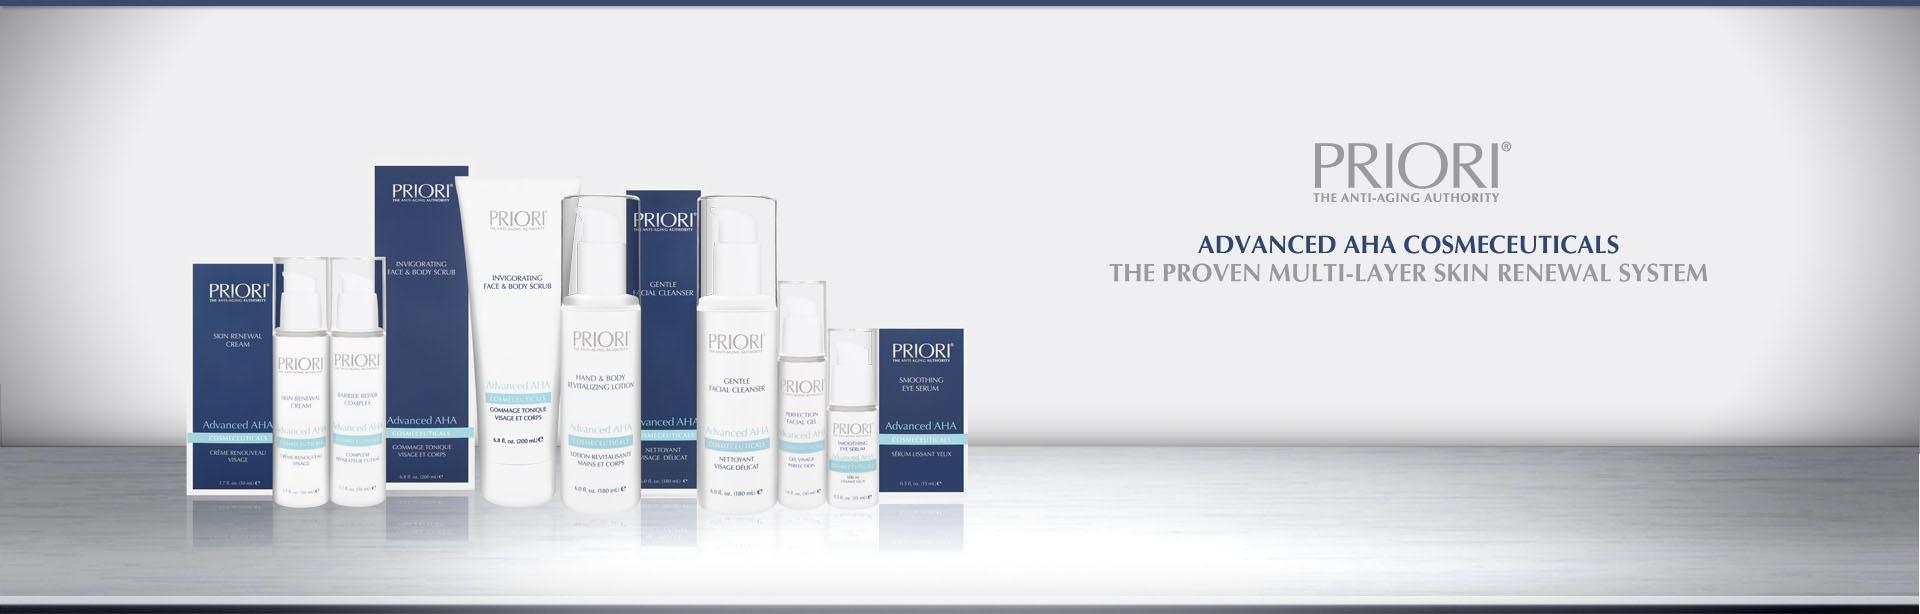 Advanced AHA Cosmeceuticals